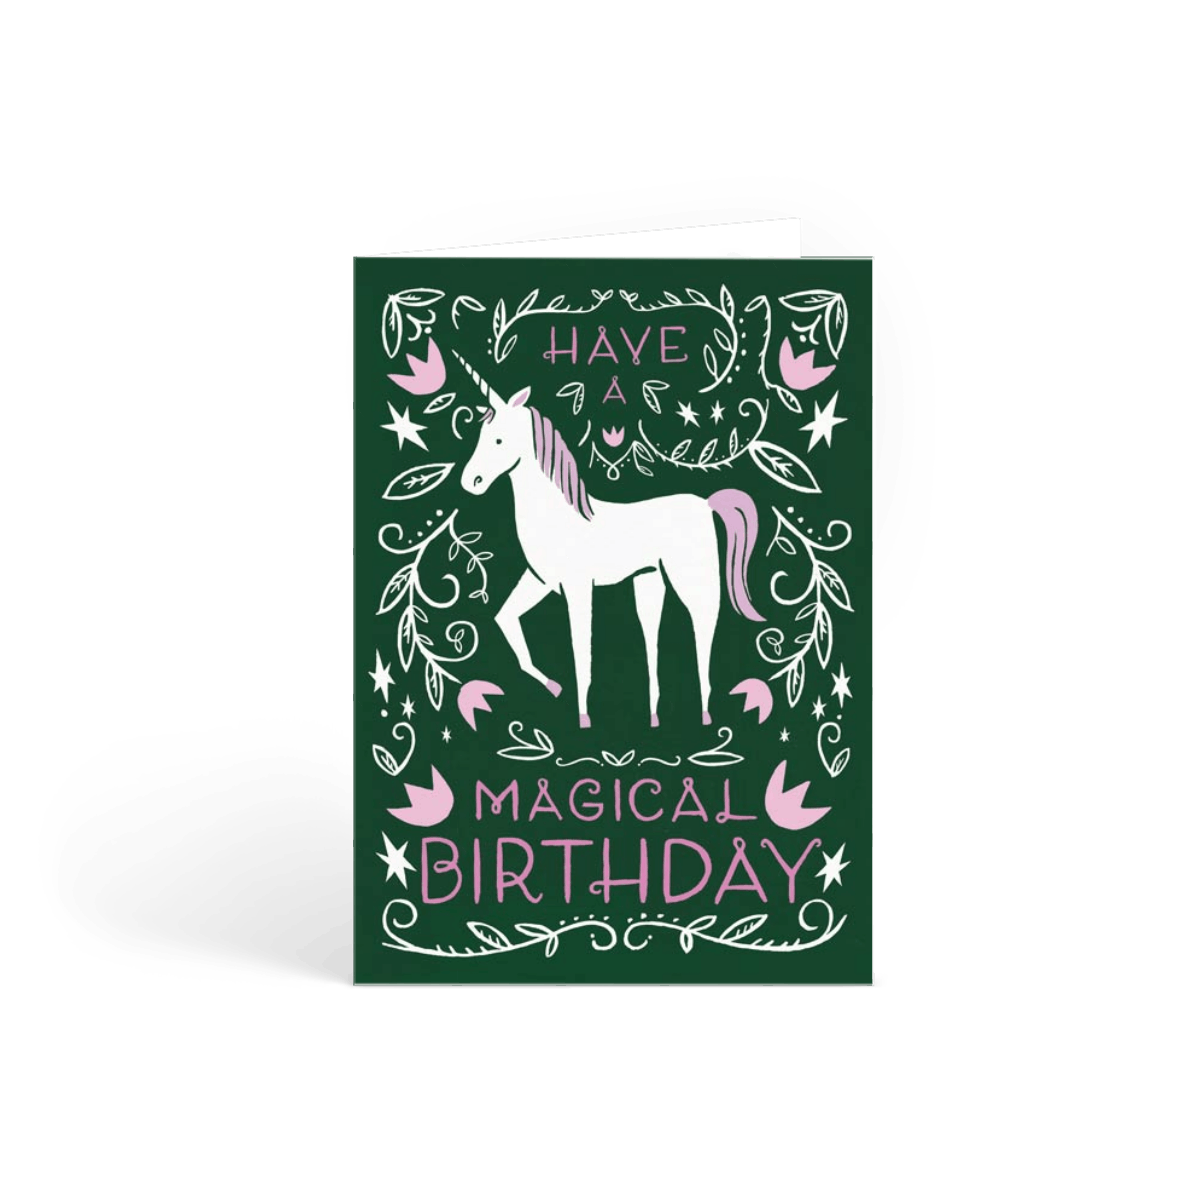 Https%3a%2f%2fwww.papier.com%2fproduct image%2f8171%2f2%2fmagical birthday 2023 front 1465918354.png?ixlib=rb 1.1